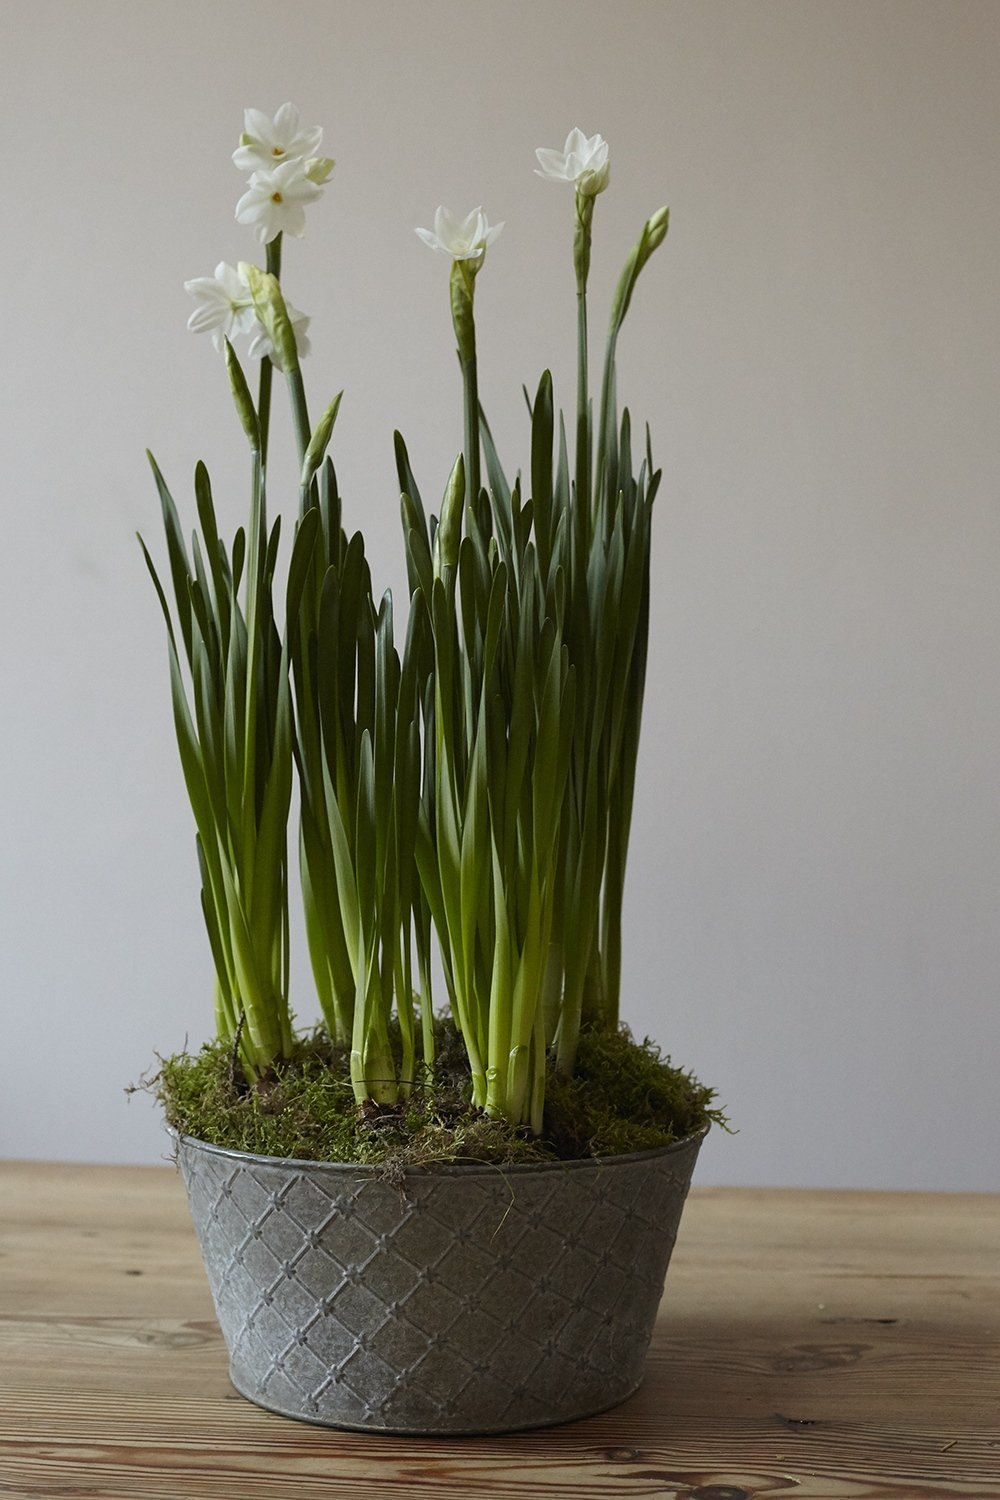 Paper White Planter - Lucy Vail Floristry